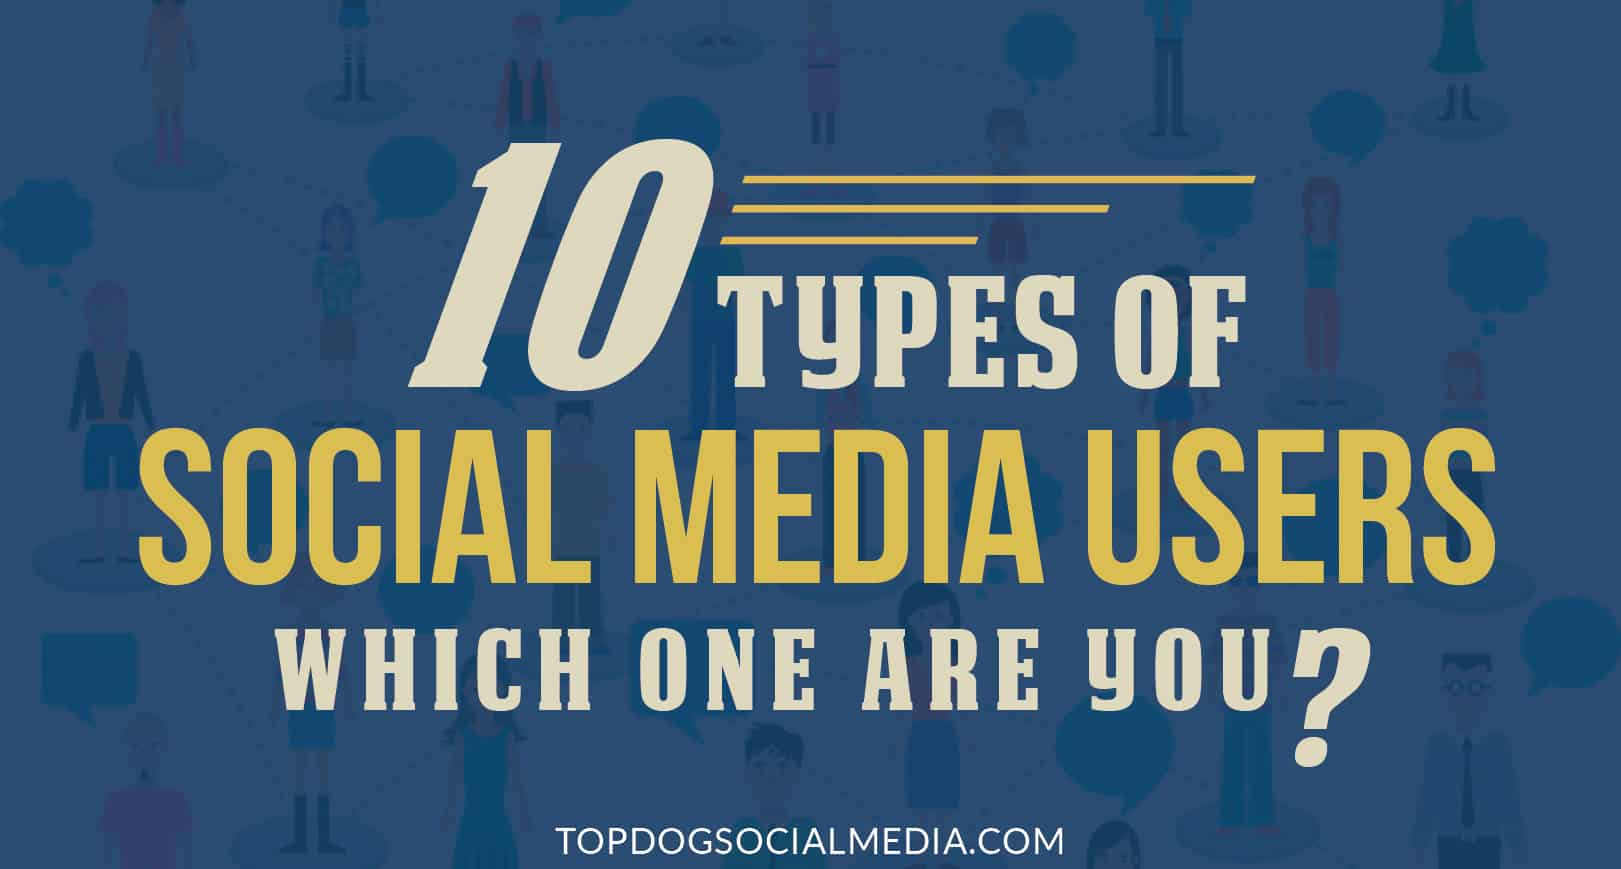 10 Types of Social Media Users (Which Are You?)